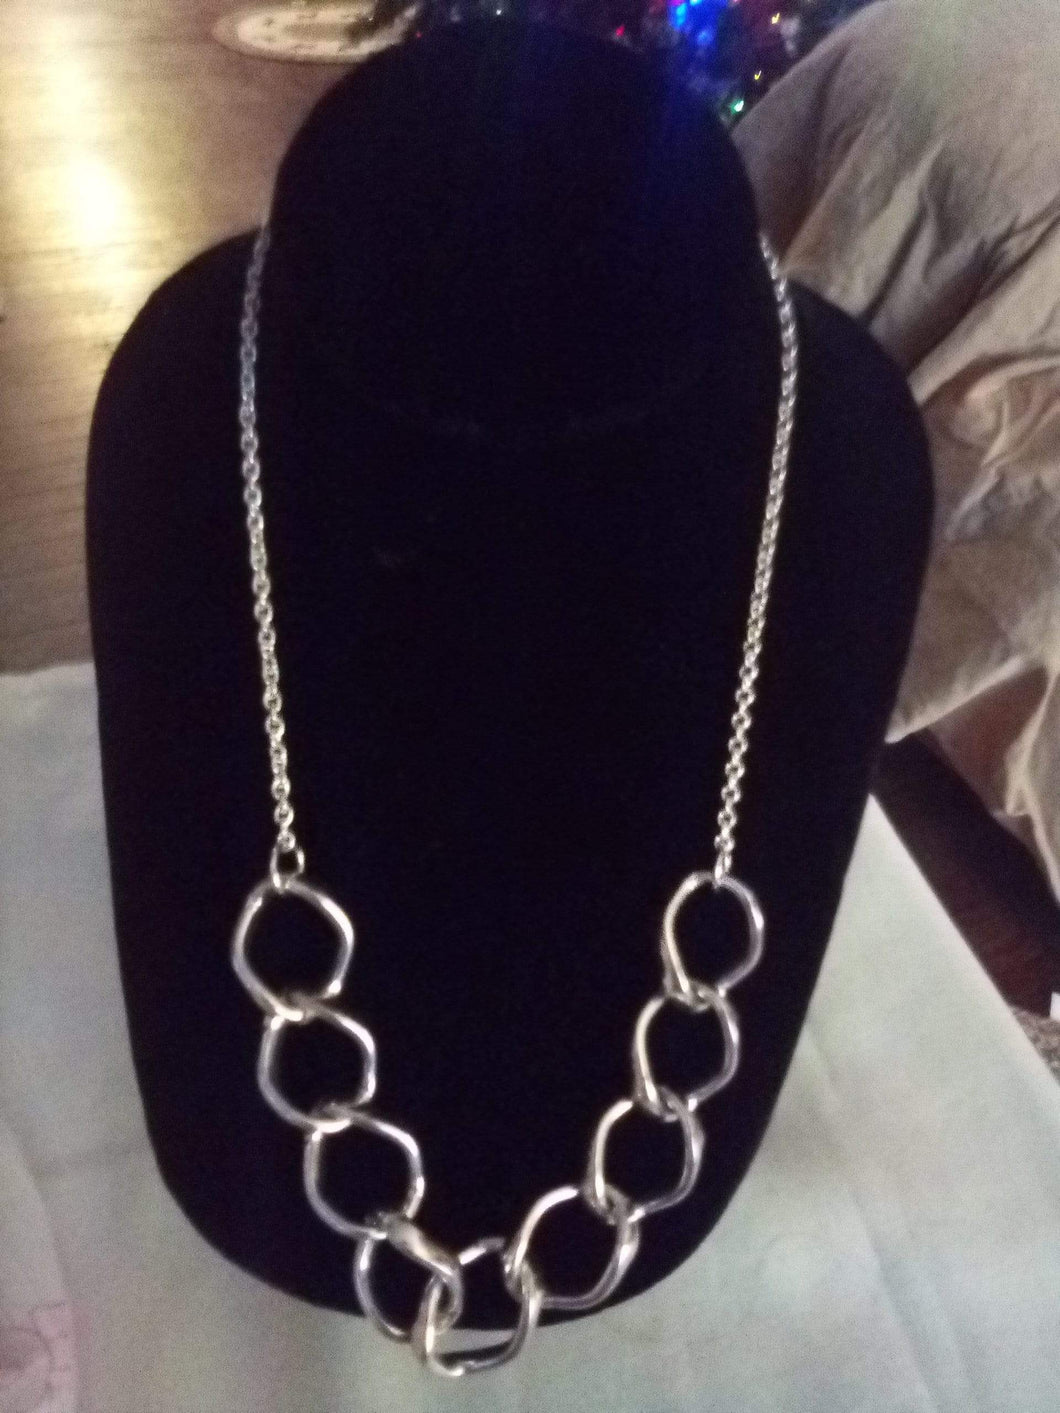 Casual silver tone necklace - B&P'sringsnthings